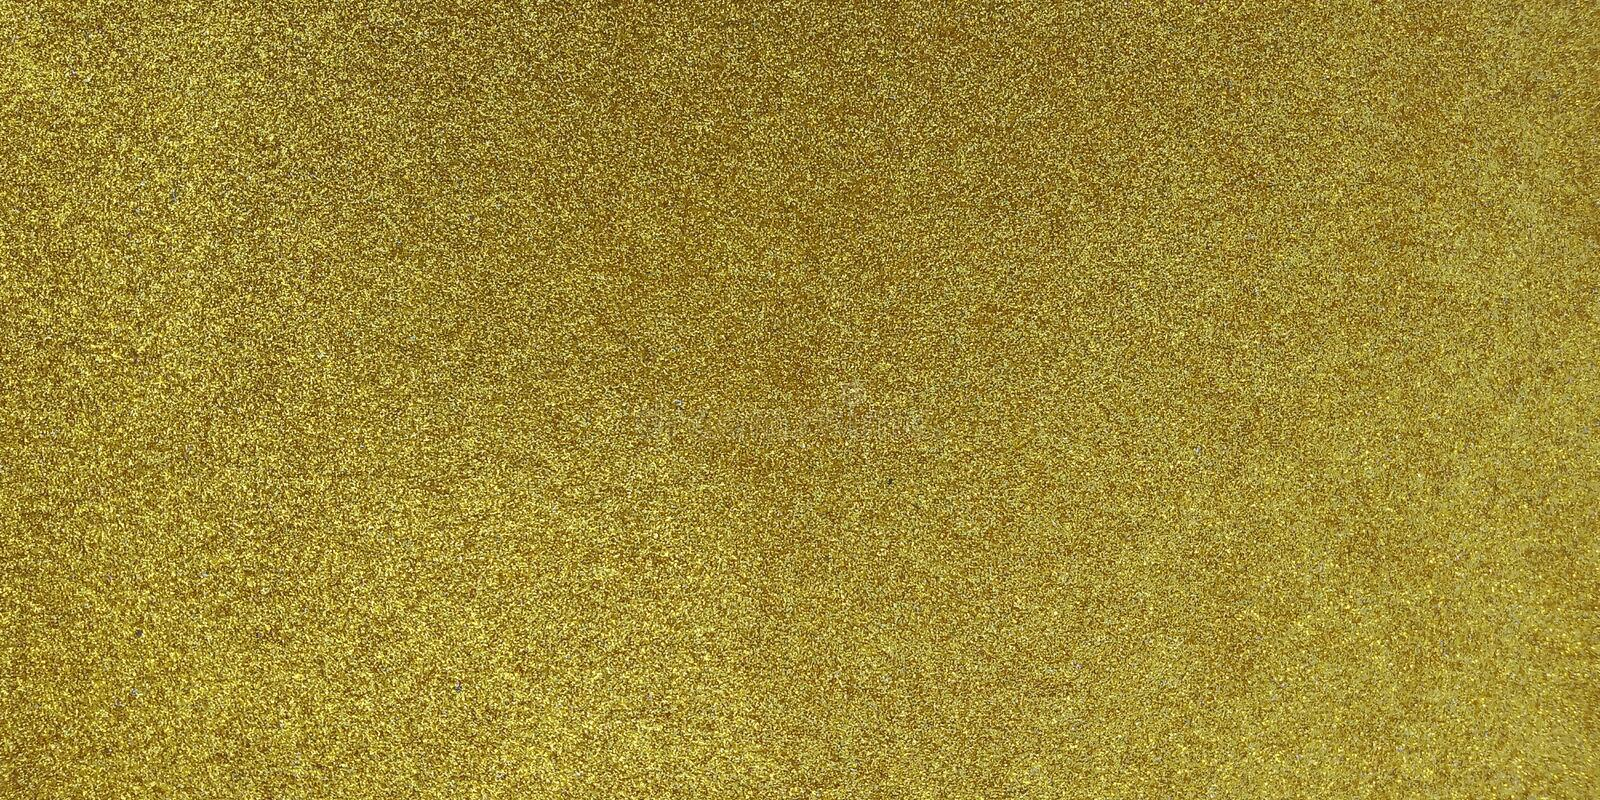 Golden textured background with glitter effect background stock images